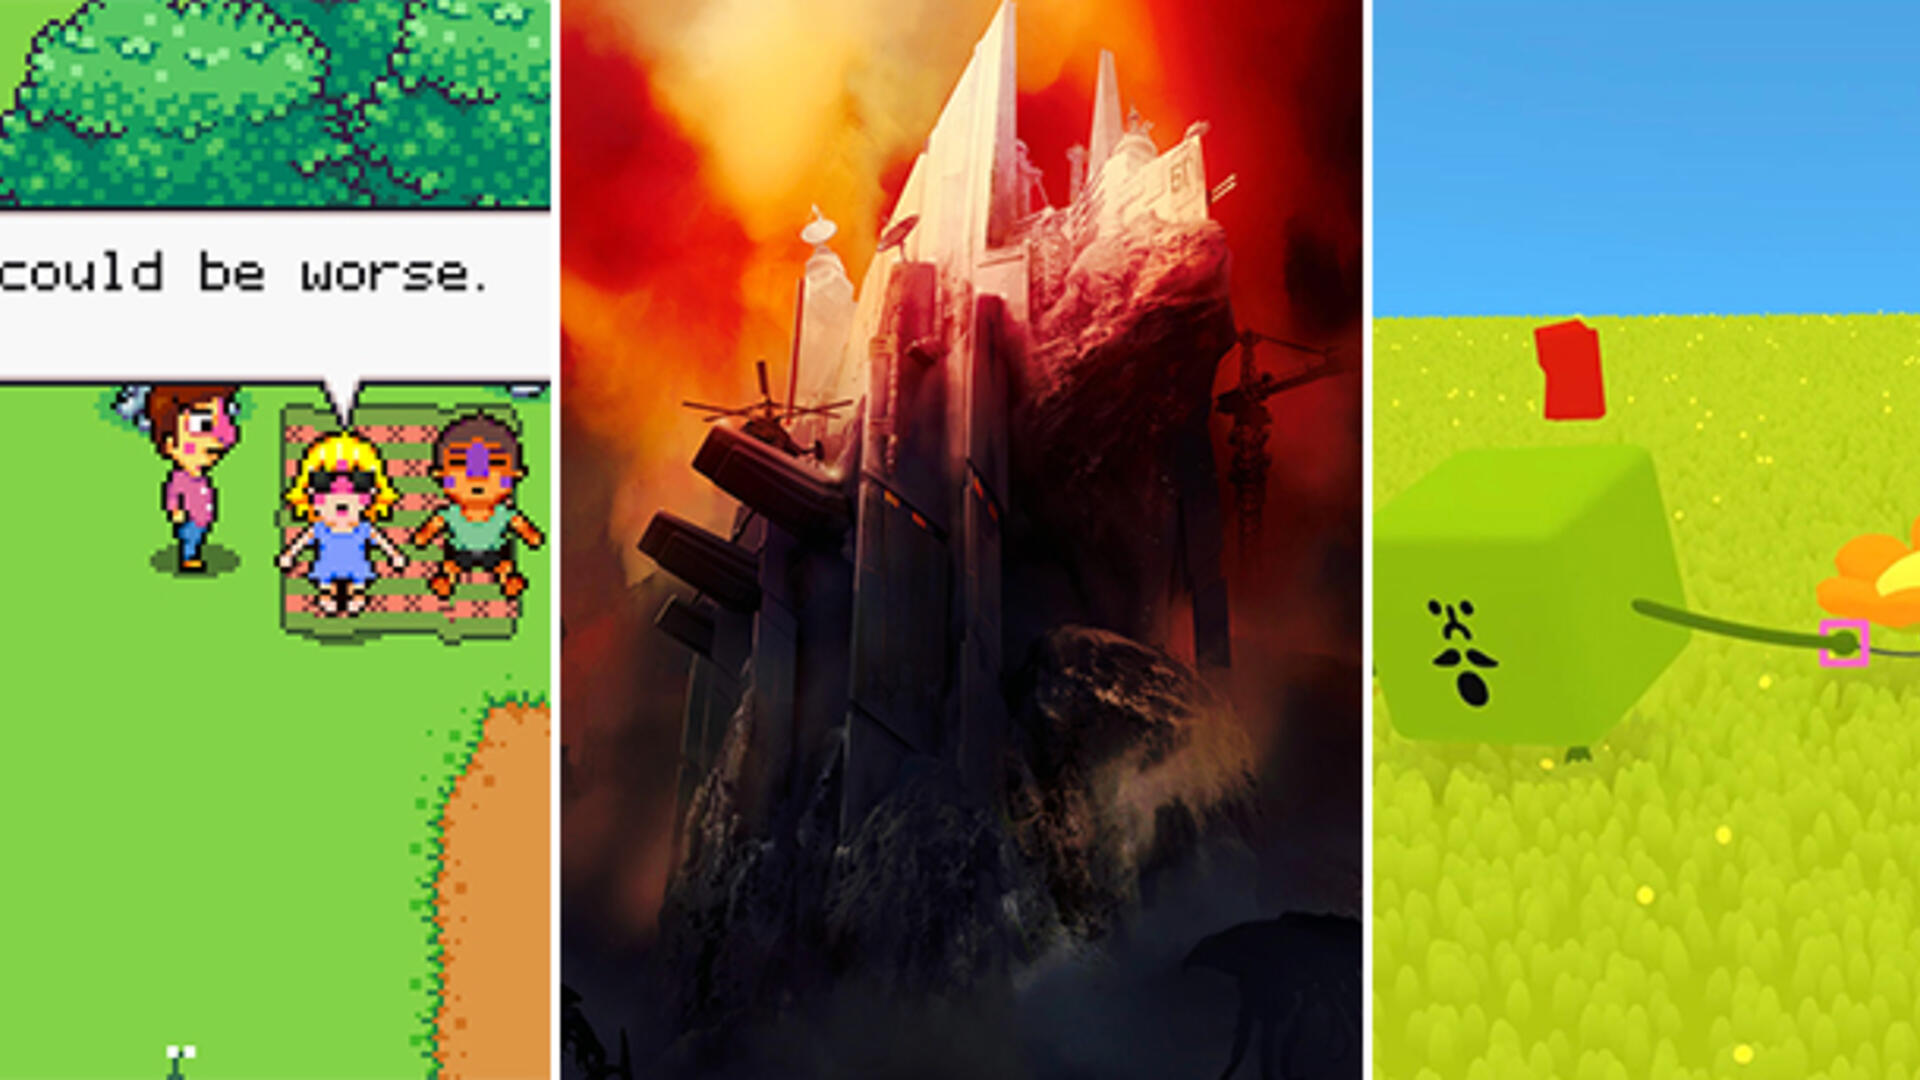 The Indie Games You Should Be Looking Out For in 2018